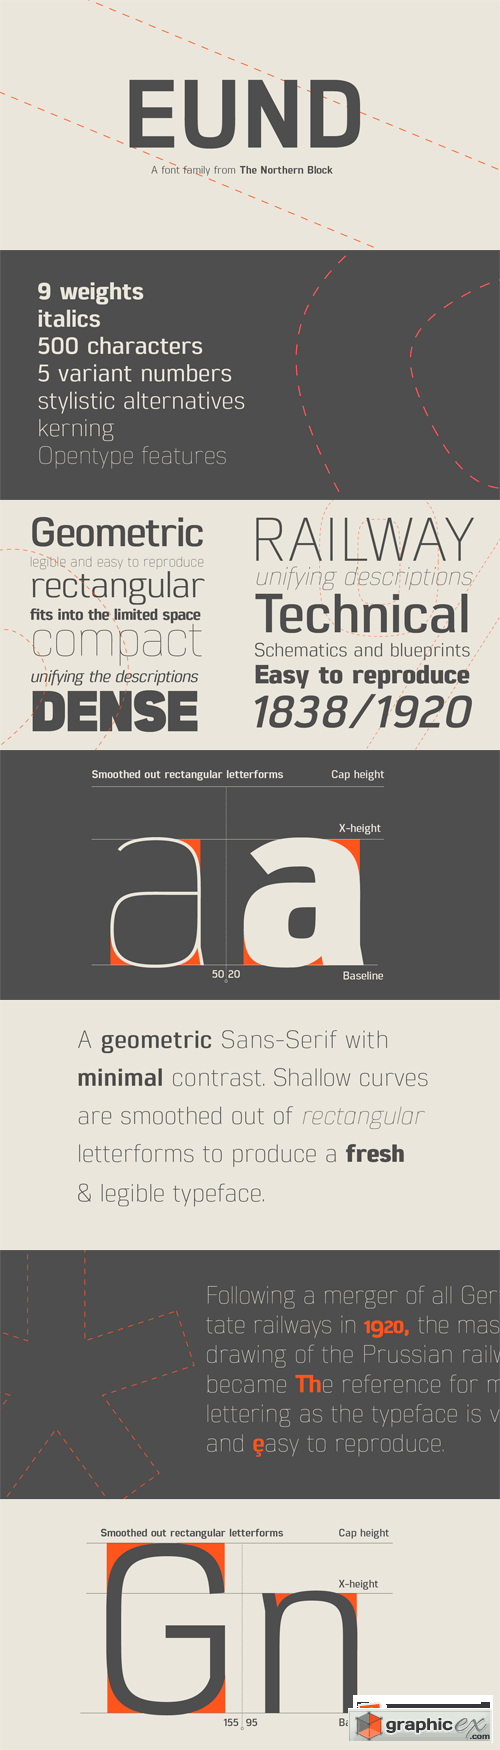 Futura Font Family Torrent - sevenbeach